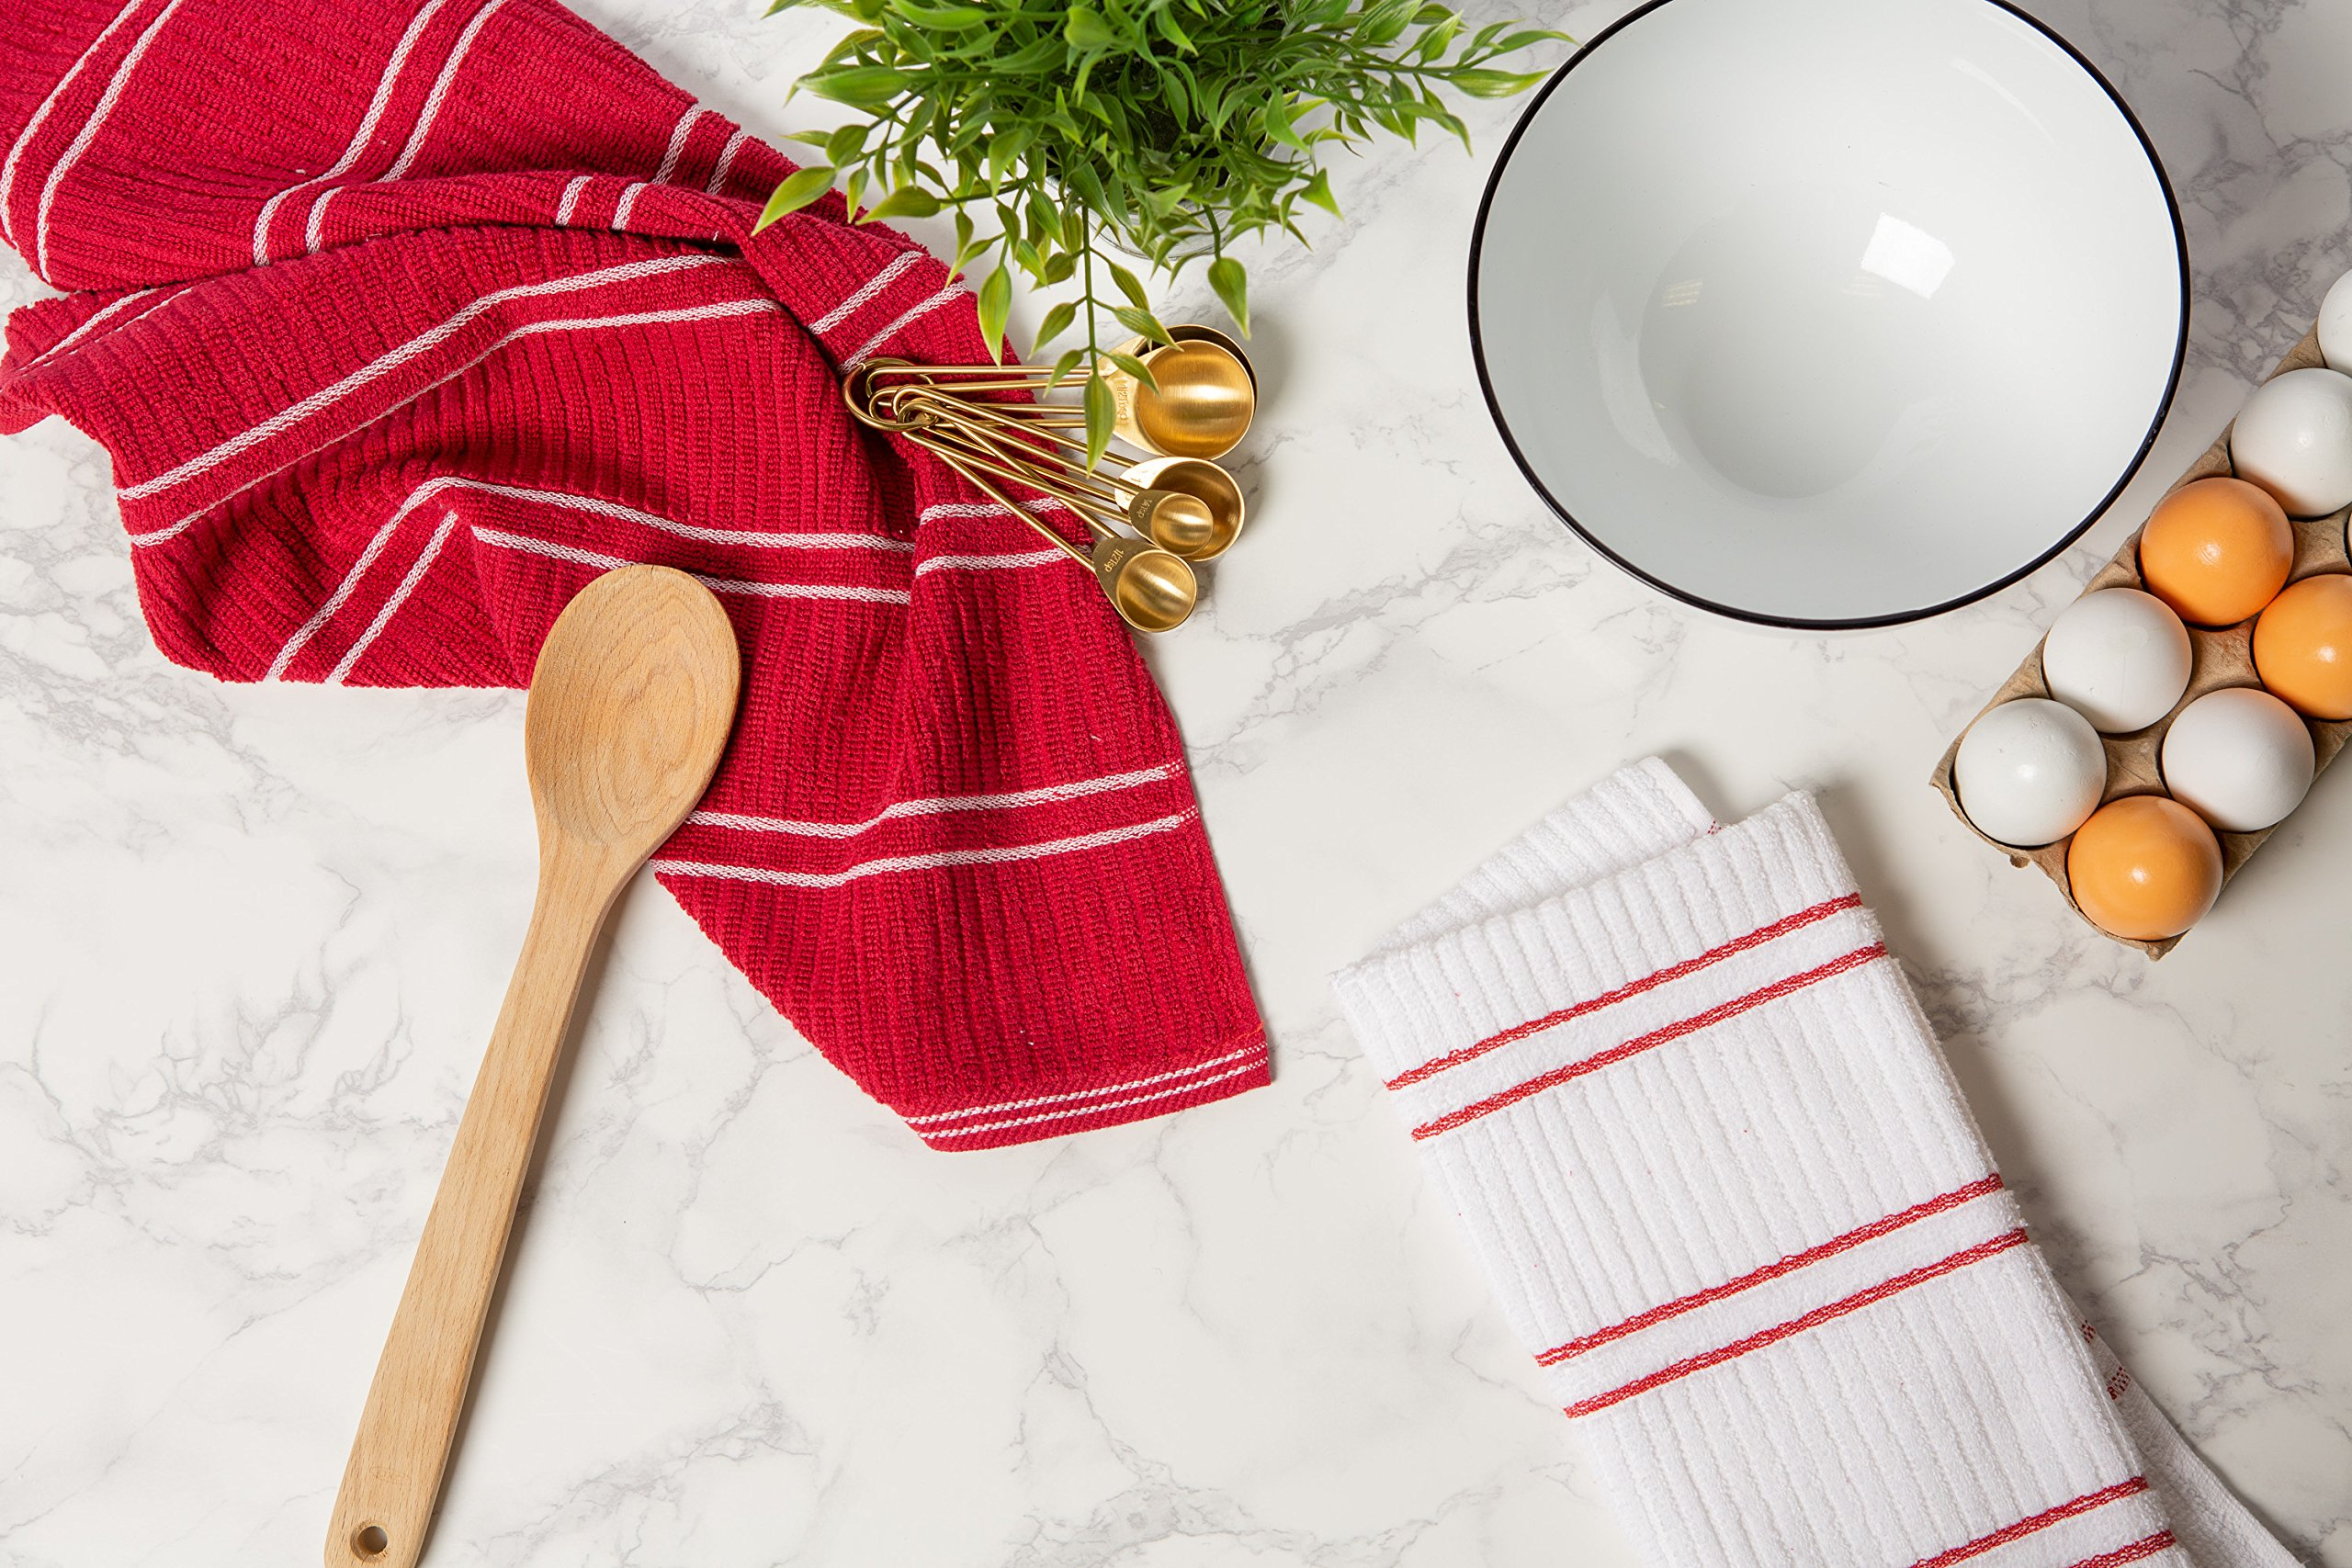 J&M Home Fashions Ribbed Terry Kitchen Dish Towels (16x26 Set of 6 - Assorted Red & White) Absorbent & Durable for Wiping Down Countertops, Dusting, or Drying Dishes by J&M Home Fashions (Image #5)